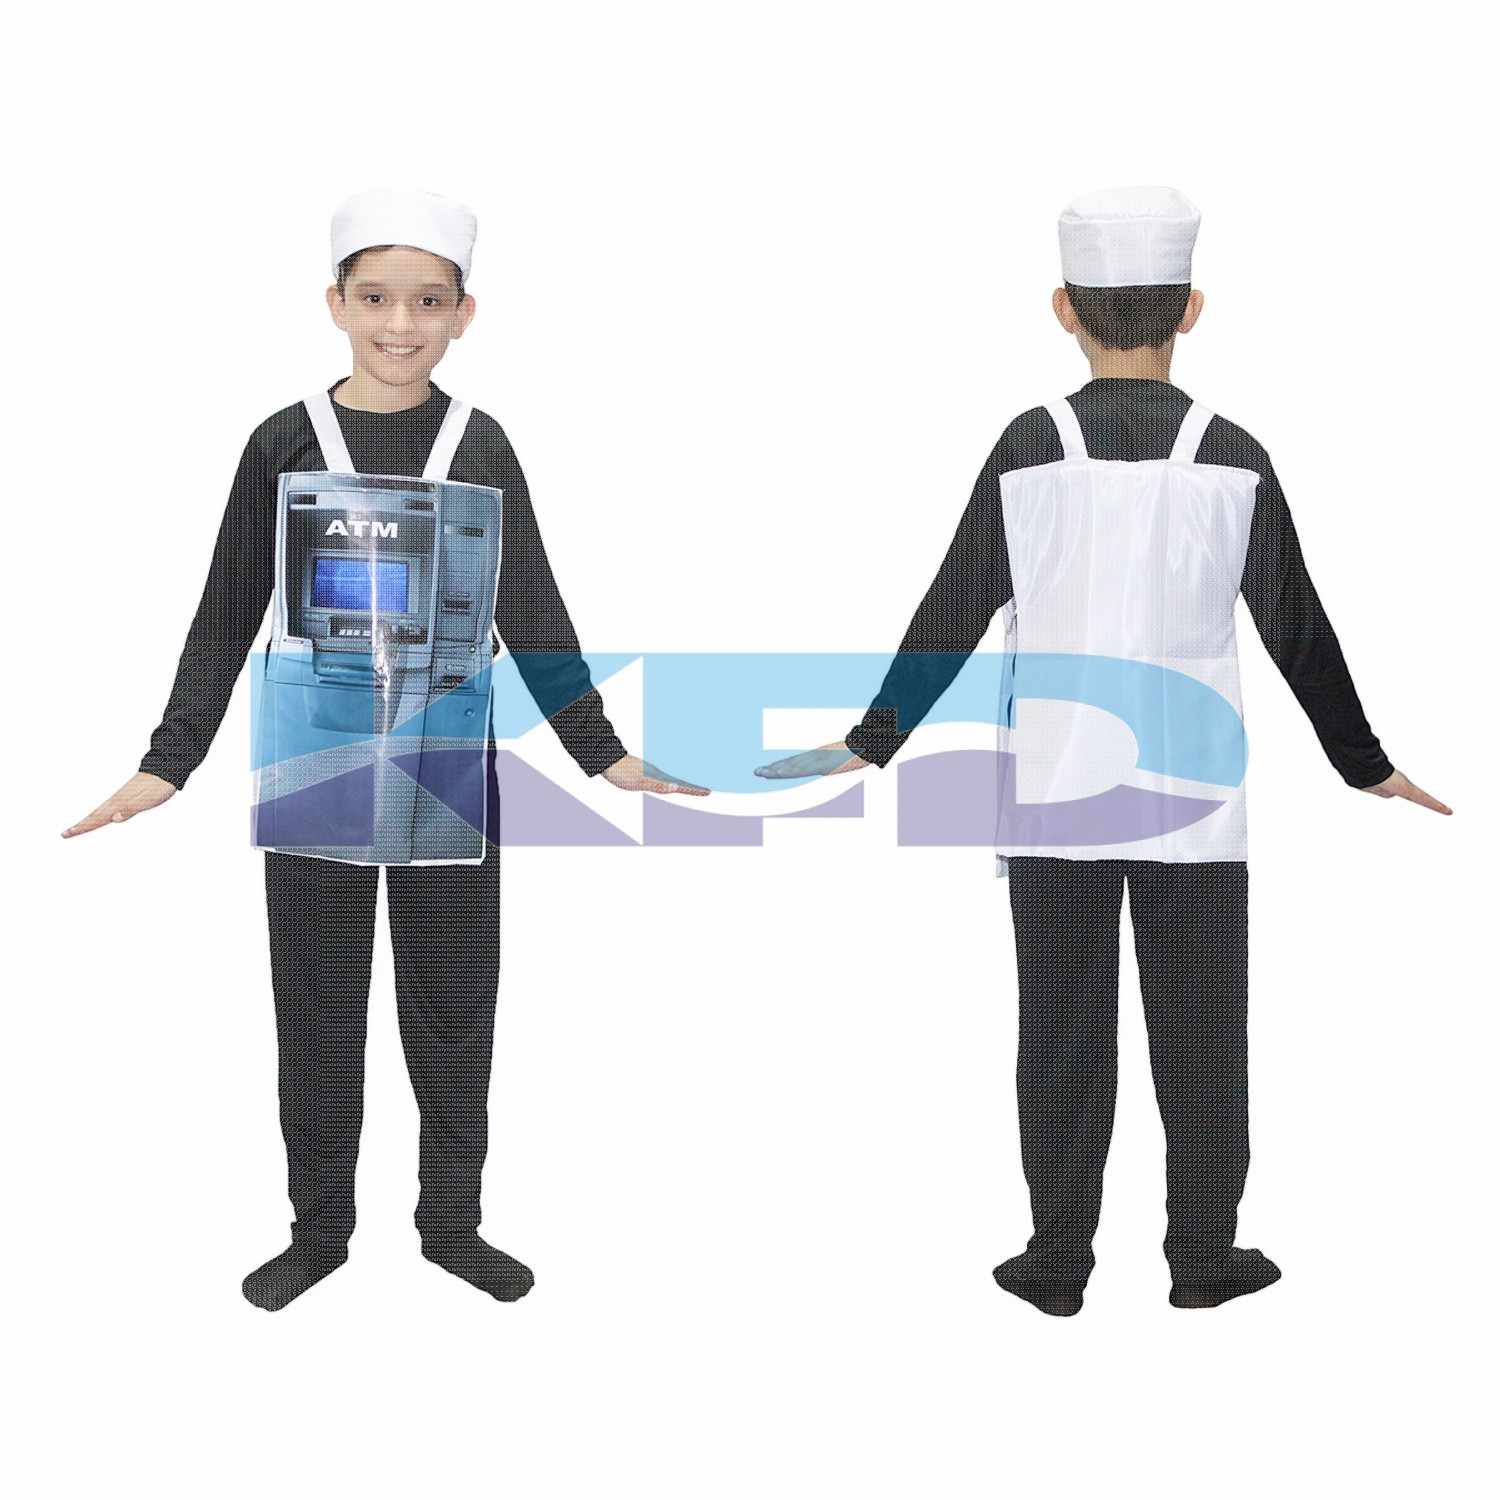 ATM Money Dispensing Machine Kids Fancy Dress Costume/Object Fancy Dress For Kids/For Kids Annual function/Theme Party/Competition/Stage Shows/Birthday Party Dress